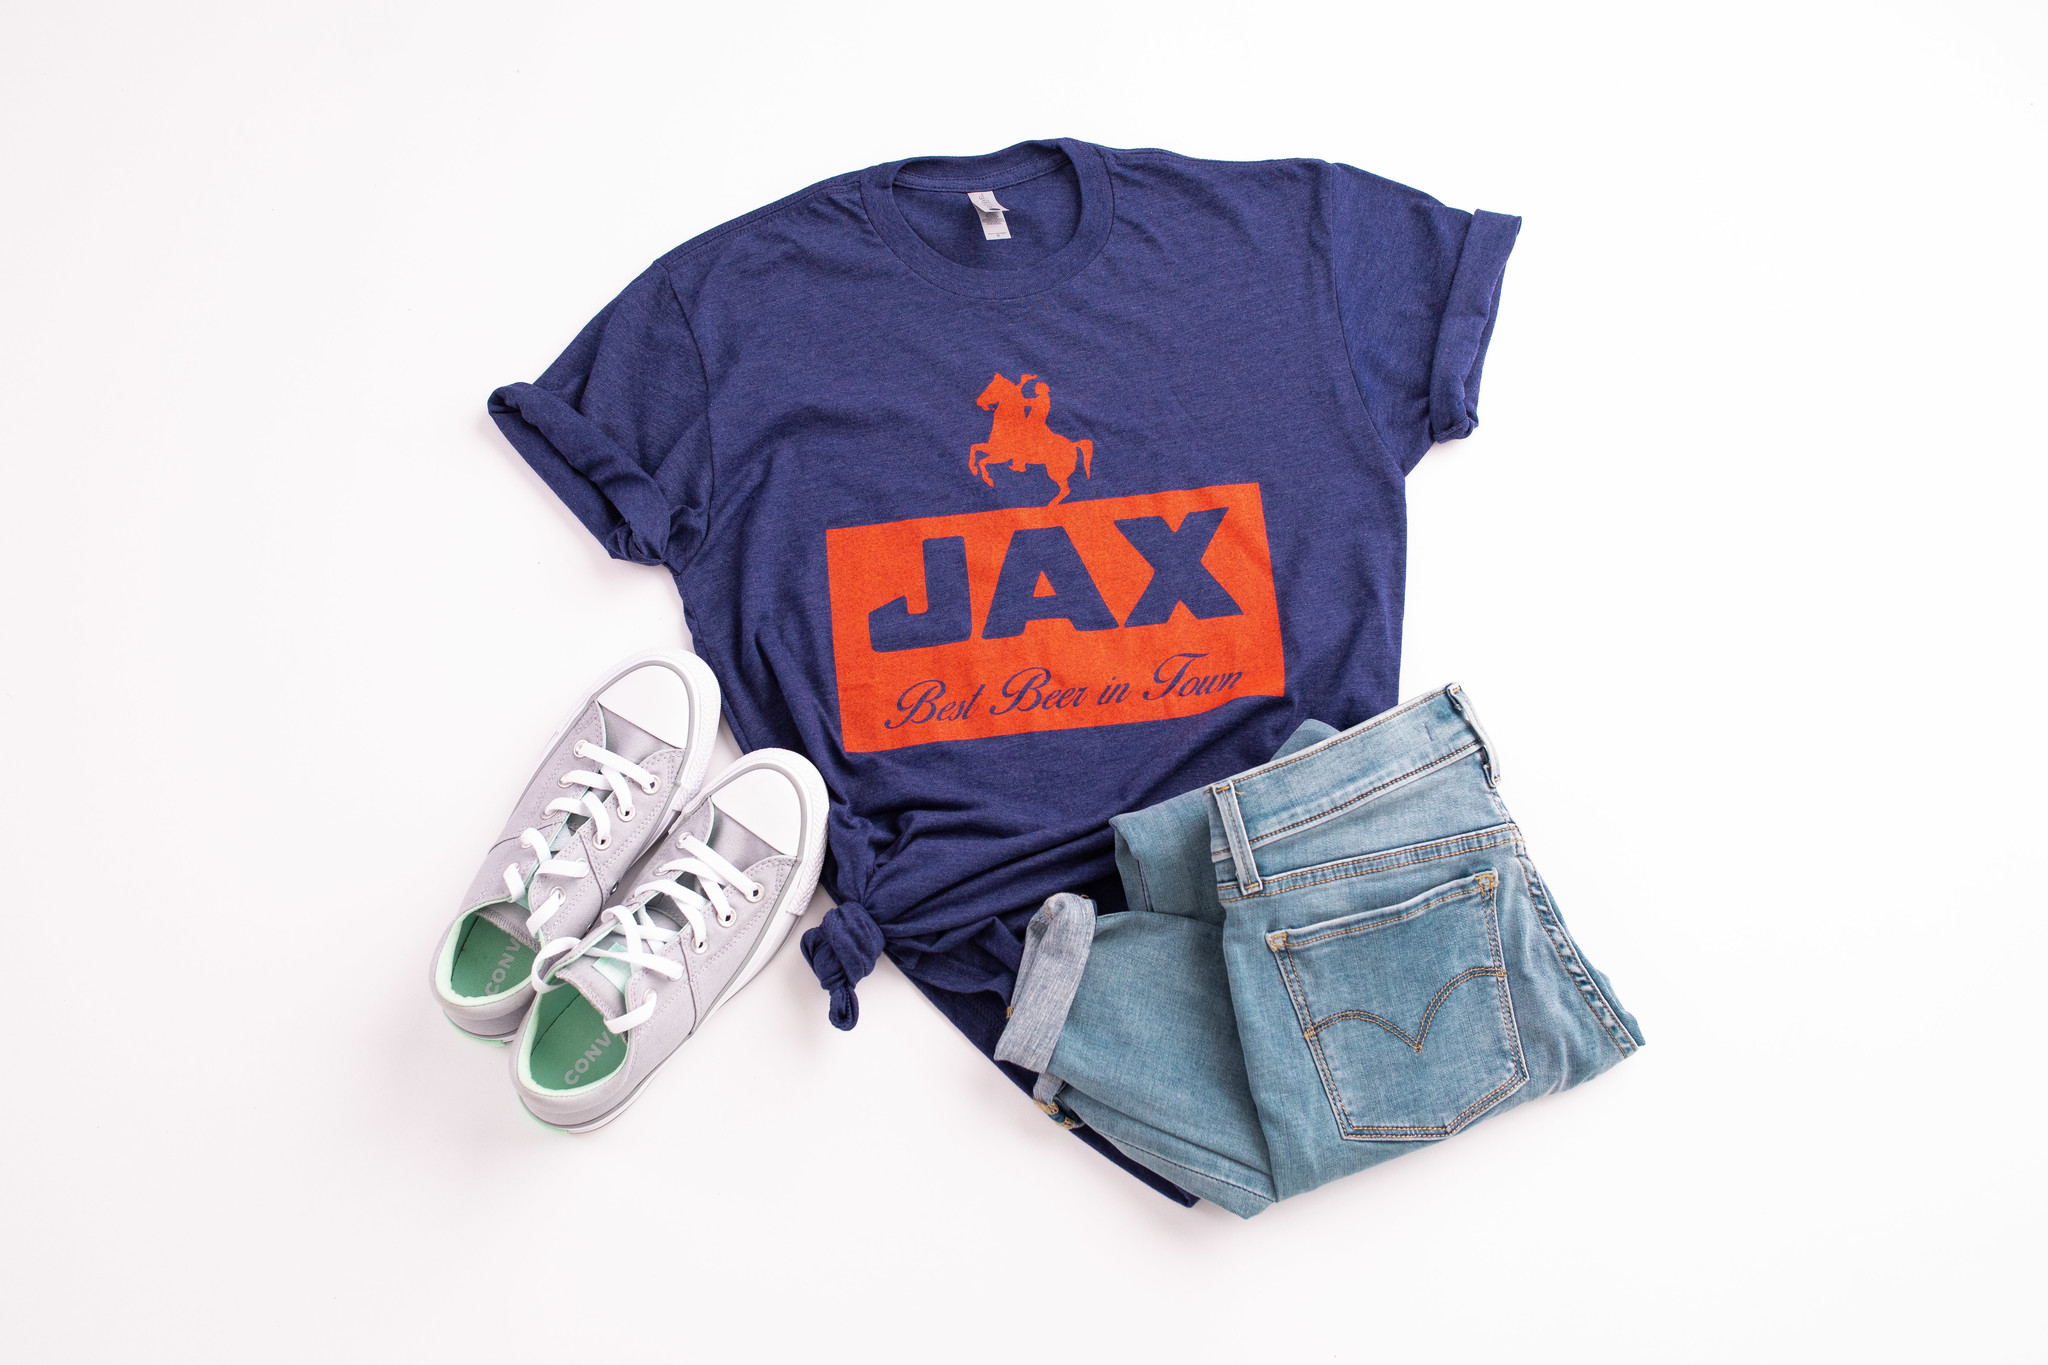 Jax Brewery Throwback Tee